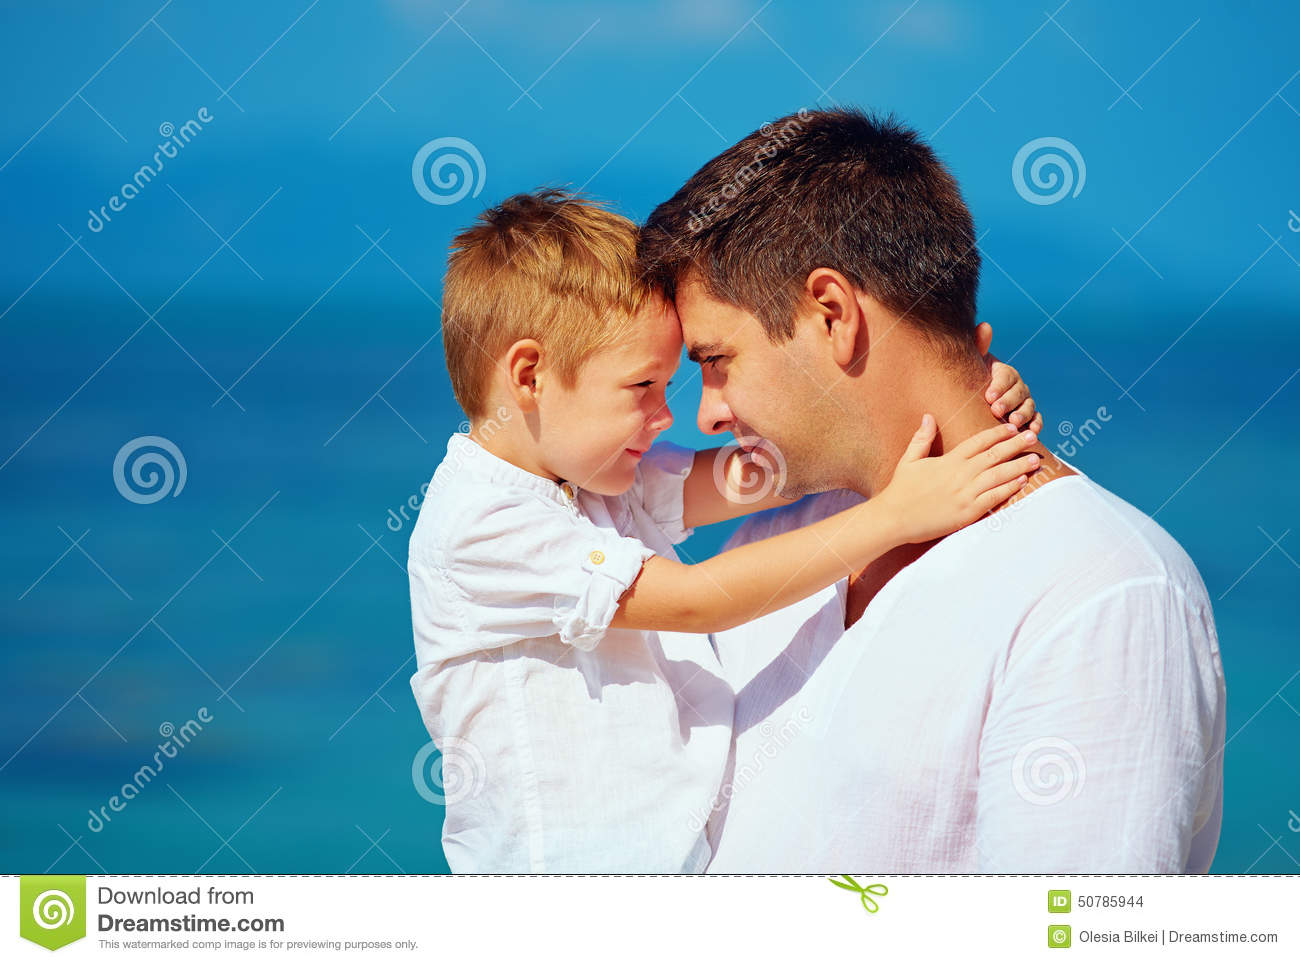 sons and fathers relationship with children